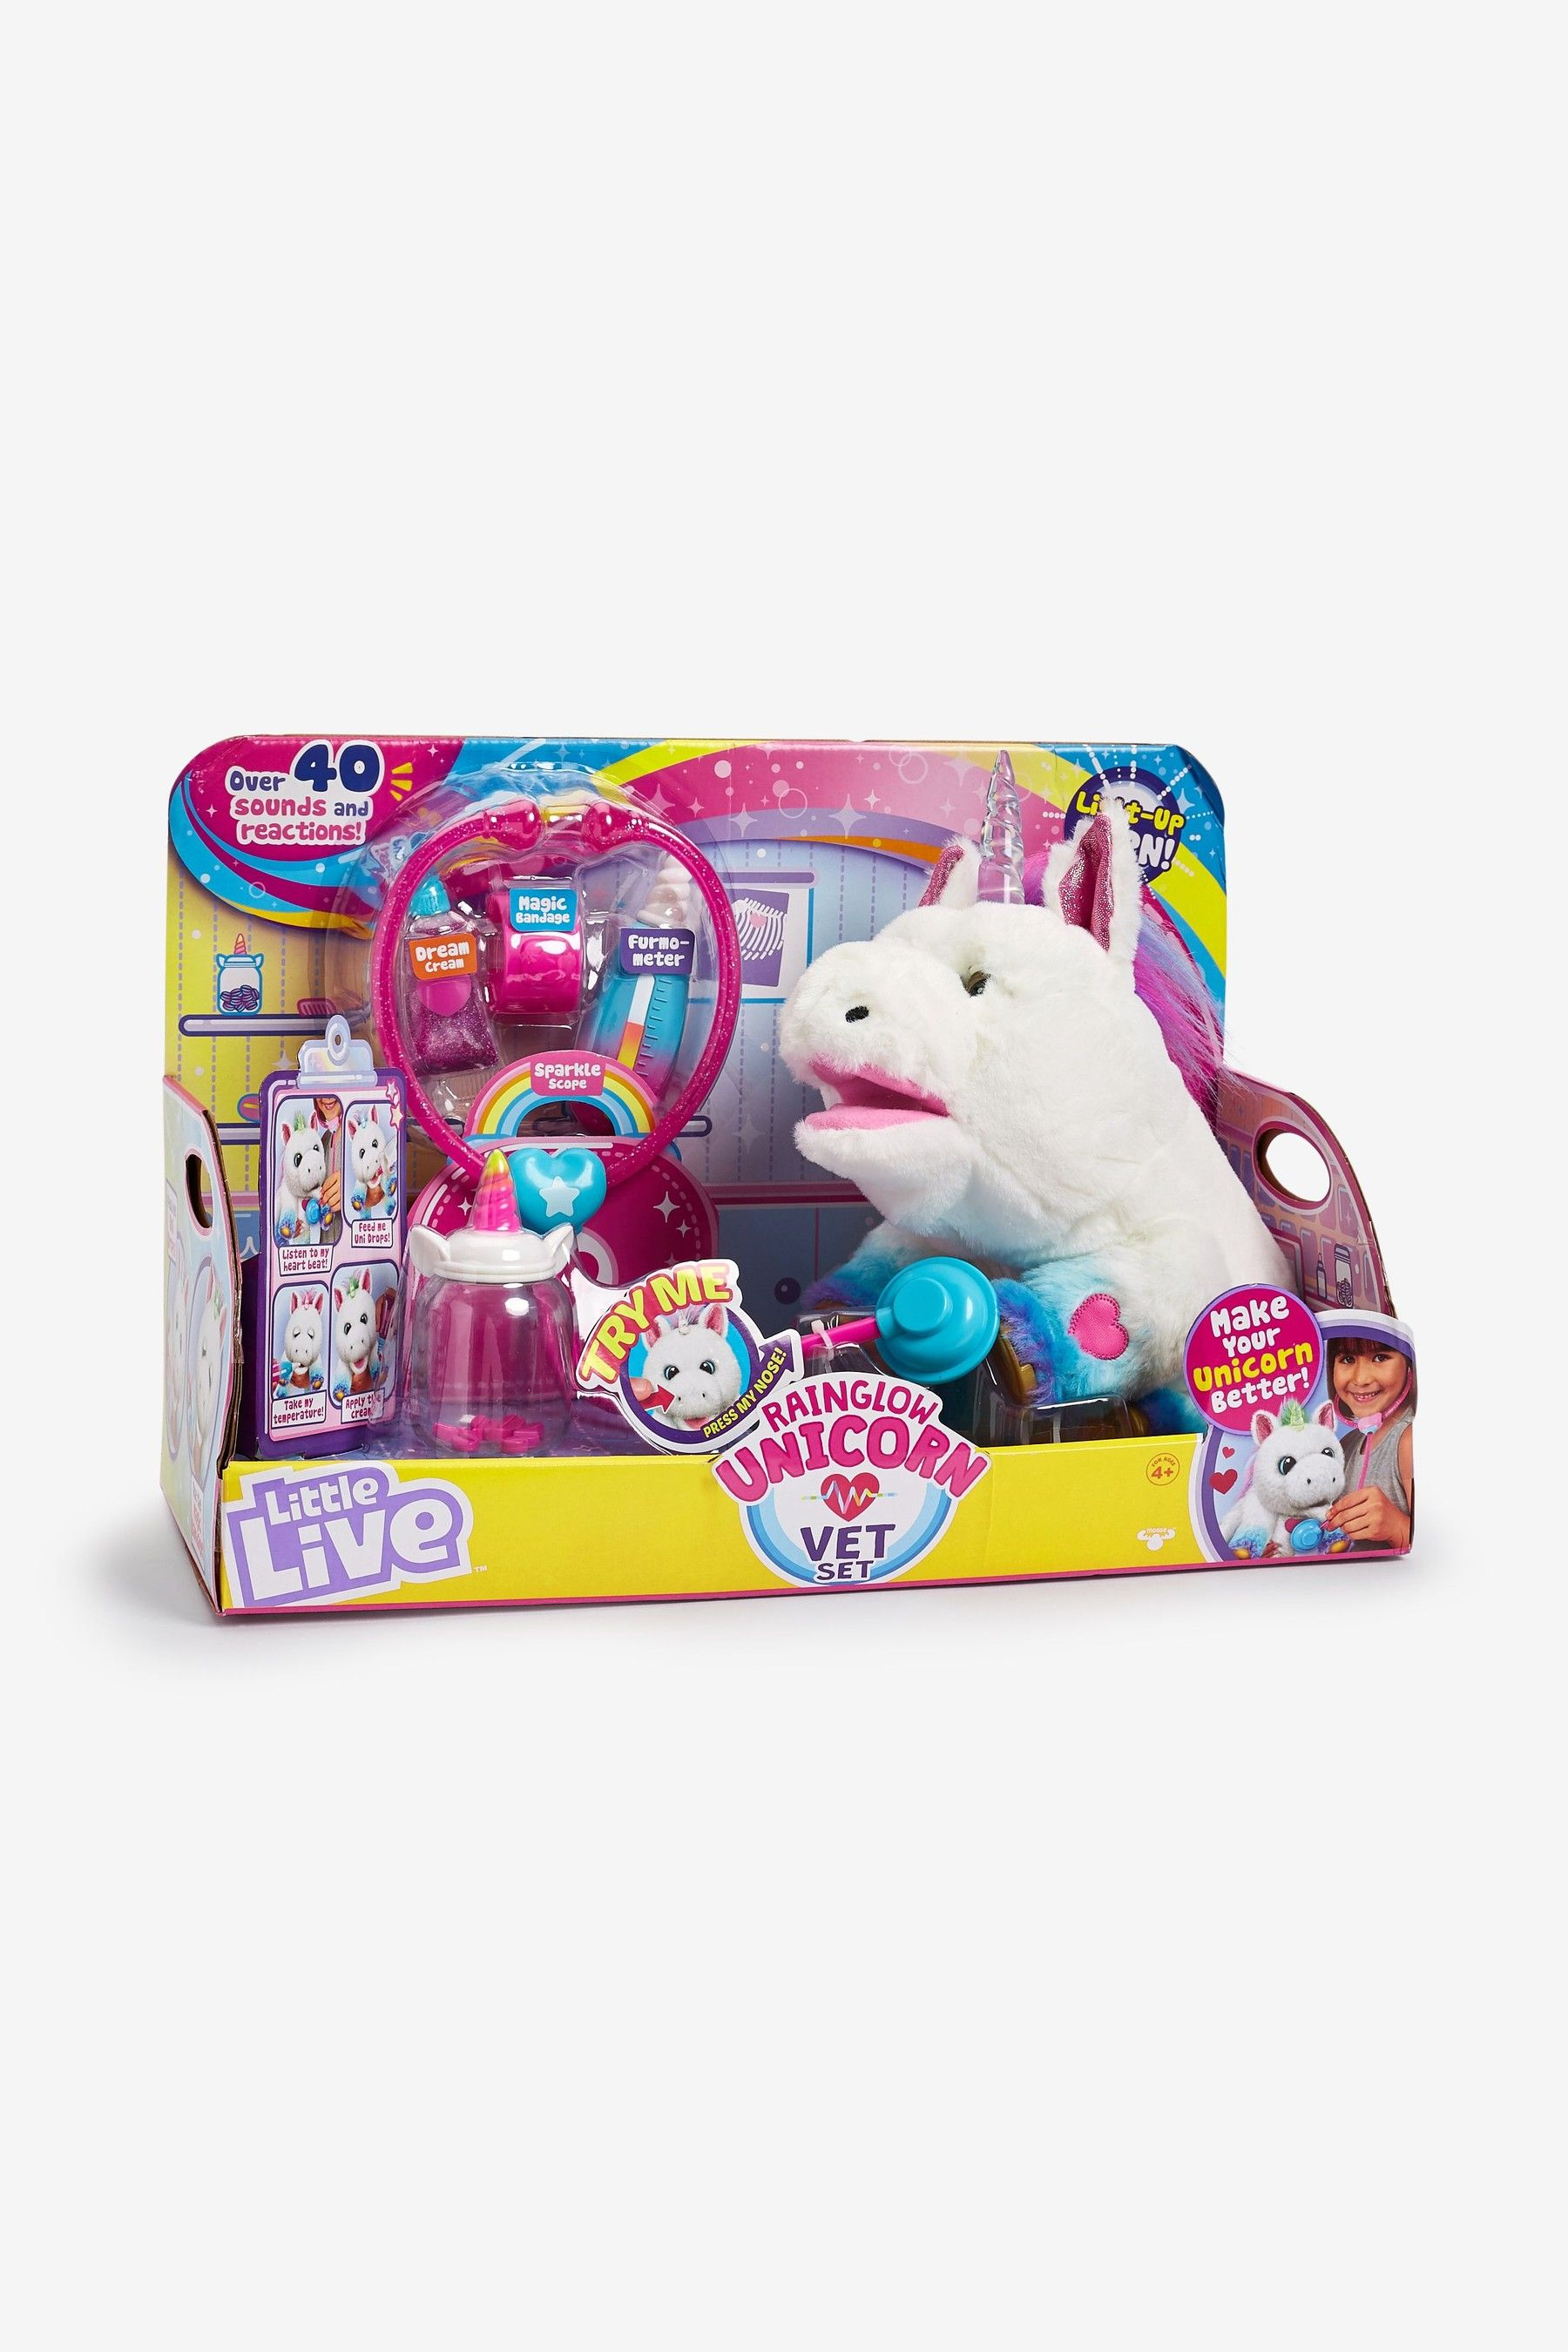 Girls Little Live Pets Rainglow Unicorn Vet Set Little Live Pets Pets Unicorn